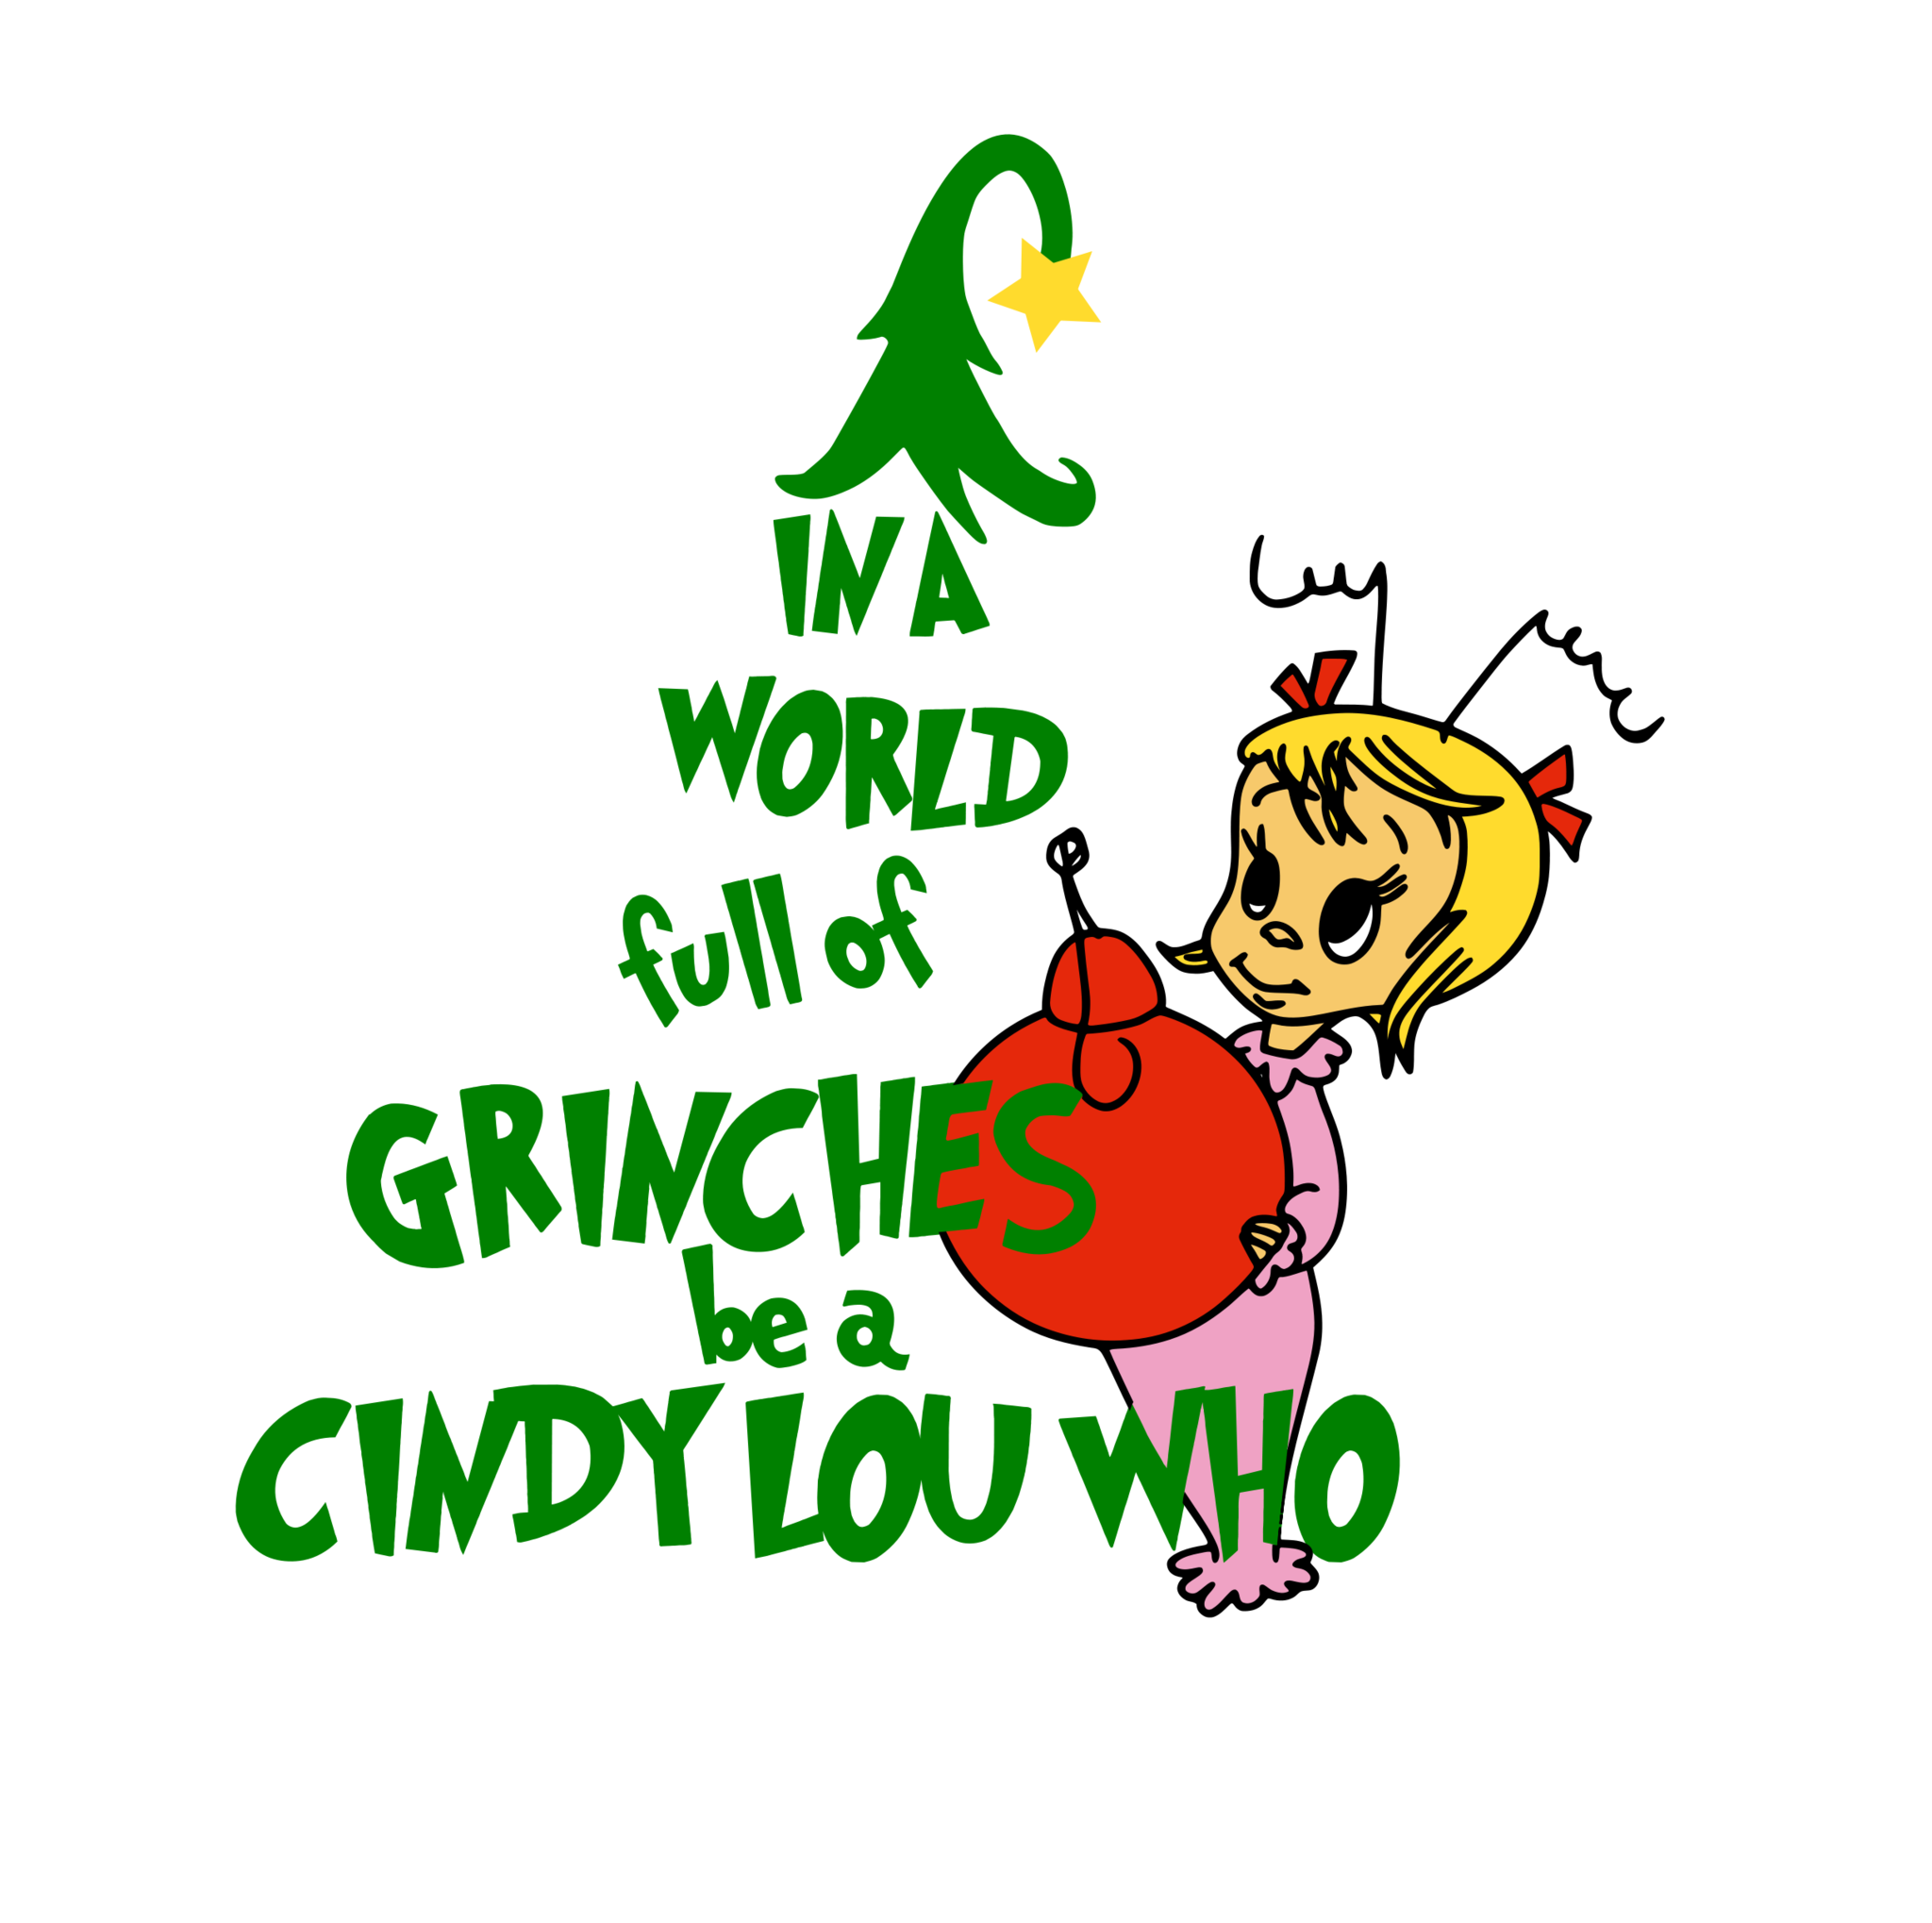 """Cindy Lou Who Png - In A World Full Of Grinches, Be A Cindy Lou Who"""" Digital DXF 